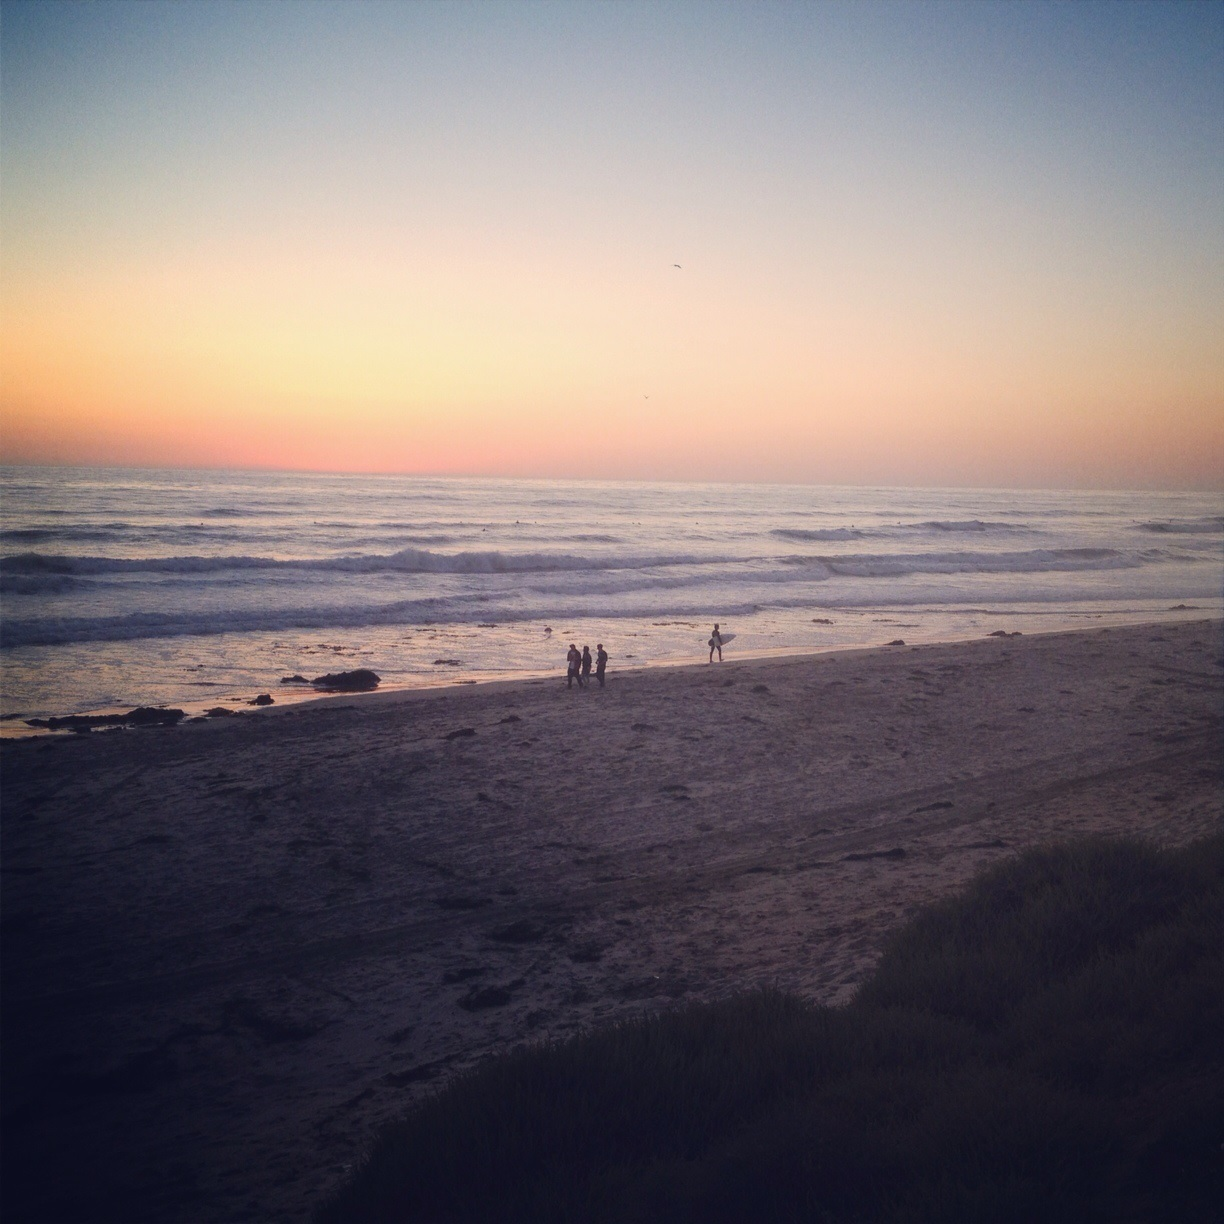 Watching the sun set at the beach is one of best free things to do in San Diego